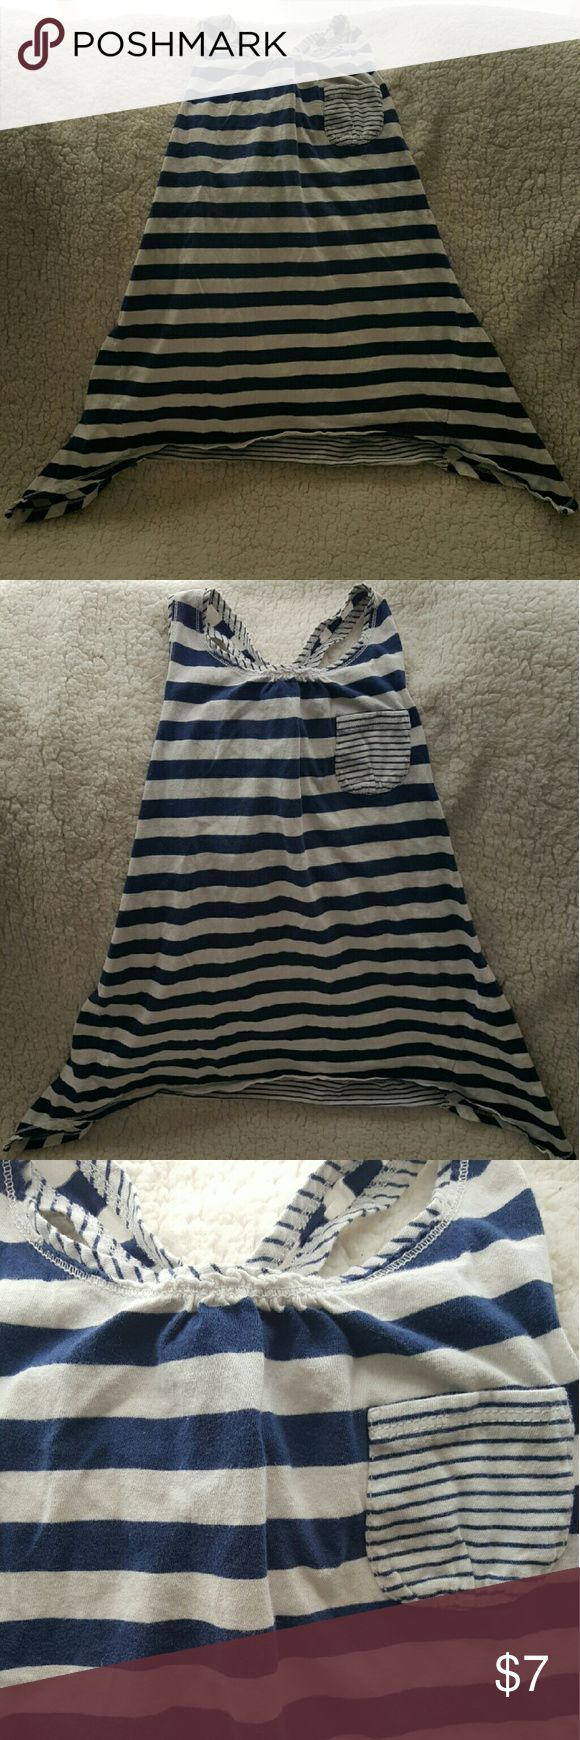 Navy blue and white stripes tank top Nave blue and white striped tank top. No rips stains or tears. american living  Tops Tank Tops